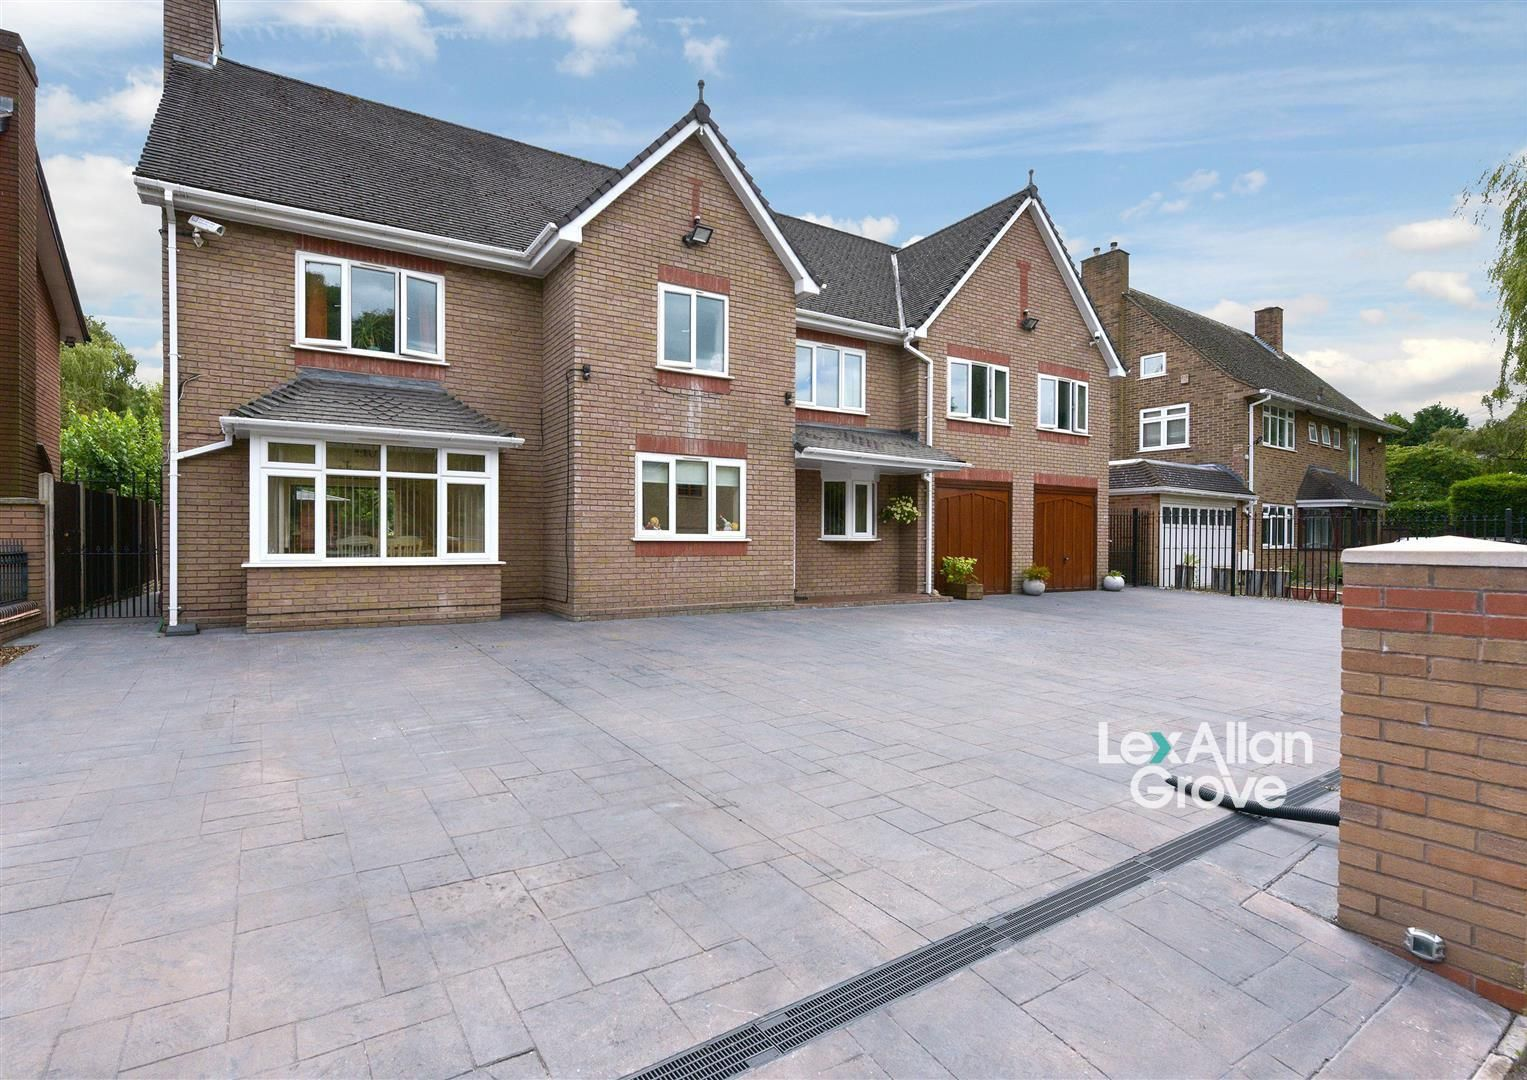 8 bed detached for sale, B17